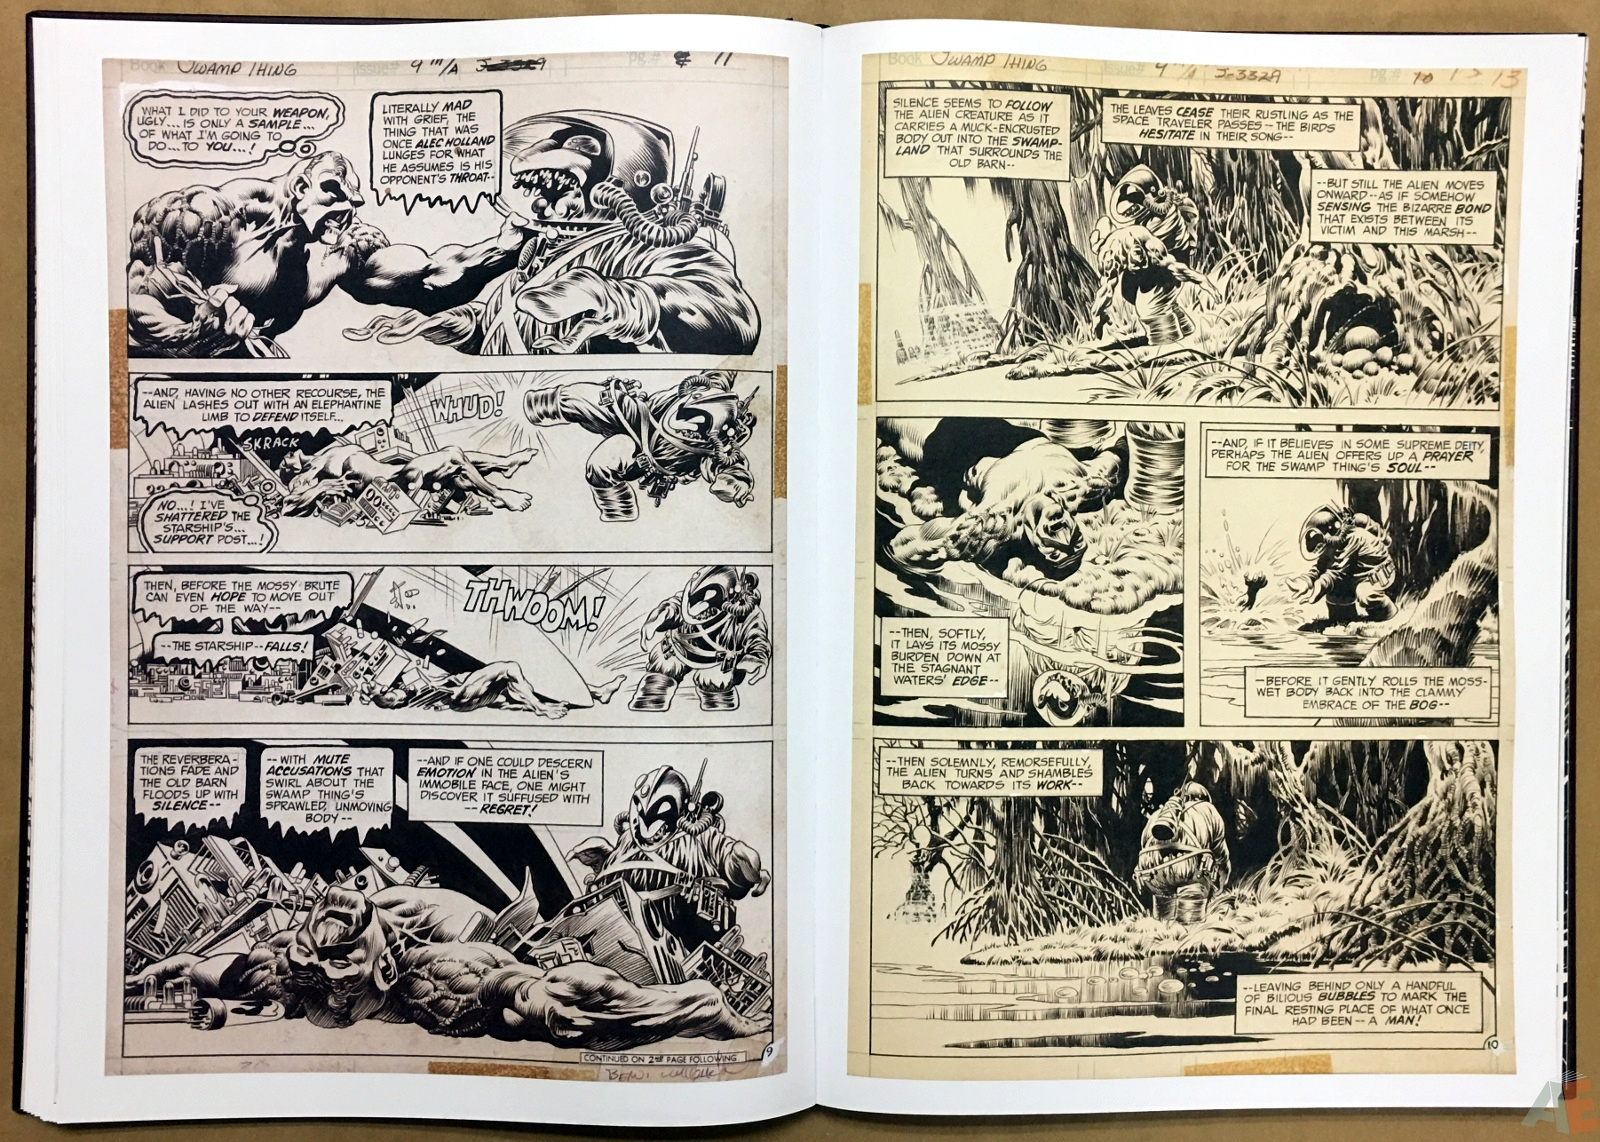 Bernie Wrightson Artifact Edition 26